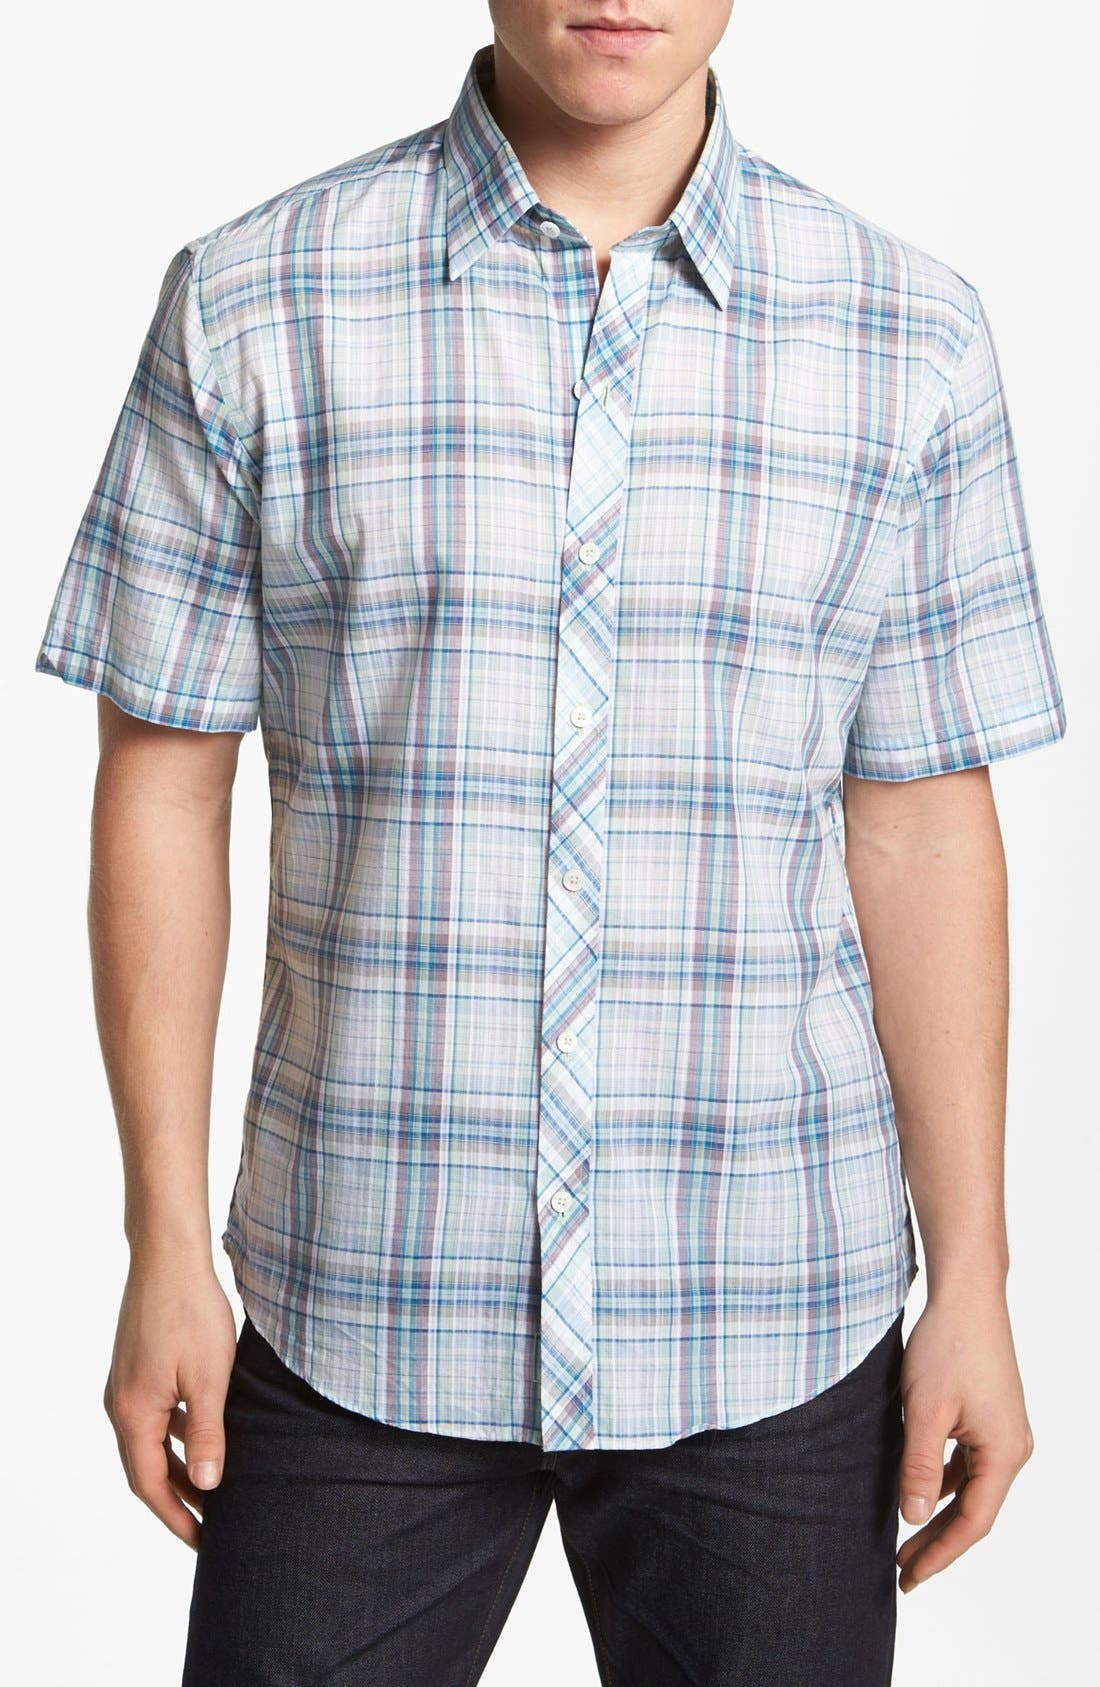 Alternate Image 1 Selected - Zachary Prell 'Soffer' Short Sleeve Sport Shirt